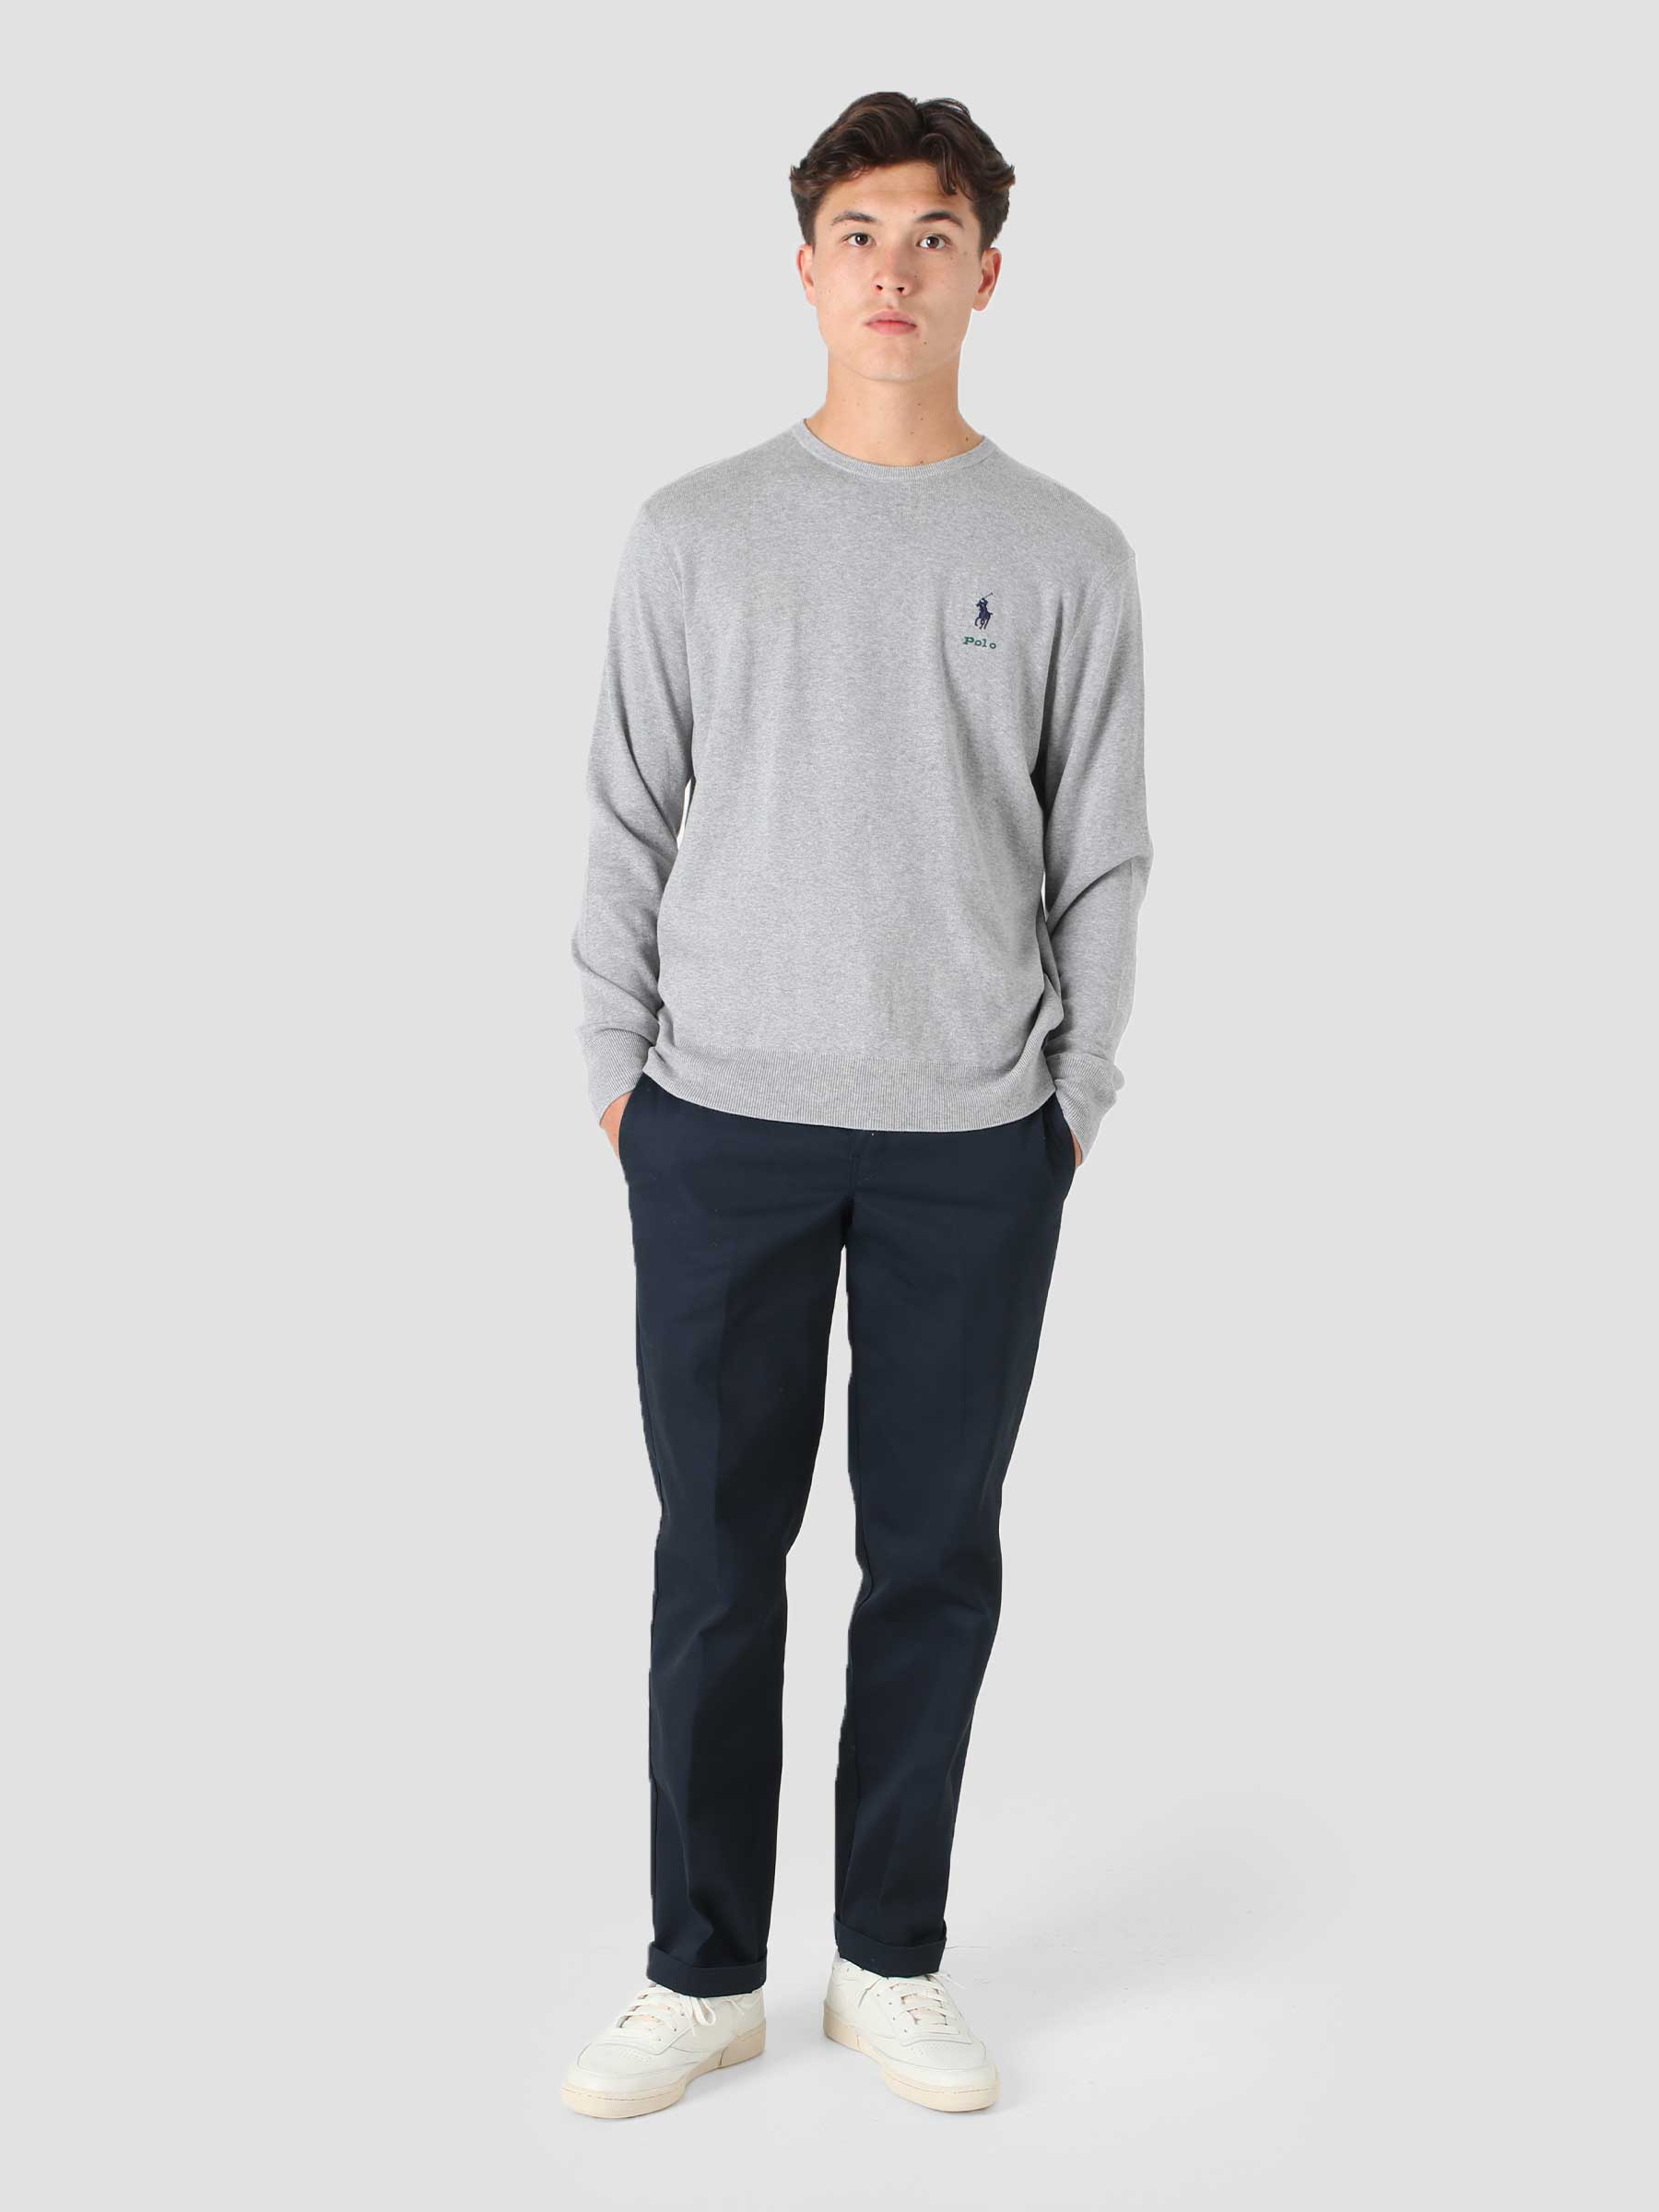 Cotton Long Sleeve Pullover Andover Heather 710850117004